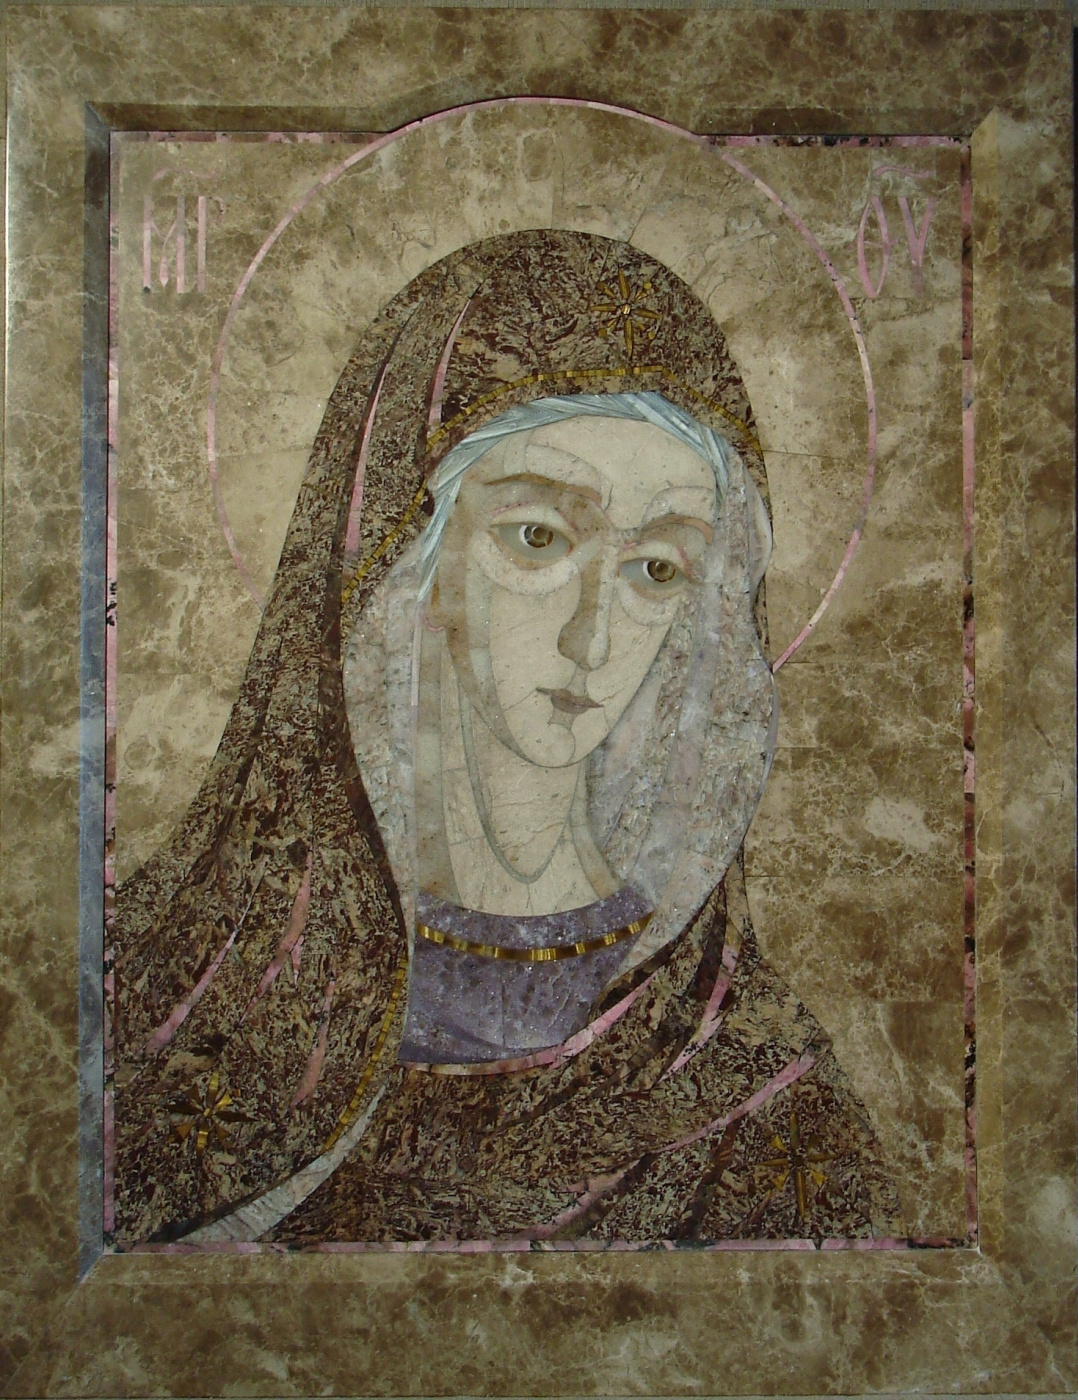 The mother of God (Deesis fragment)